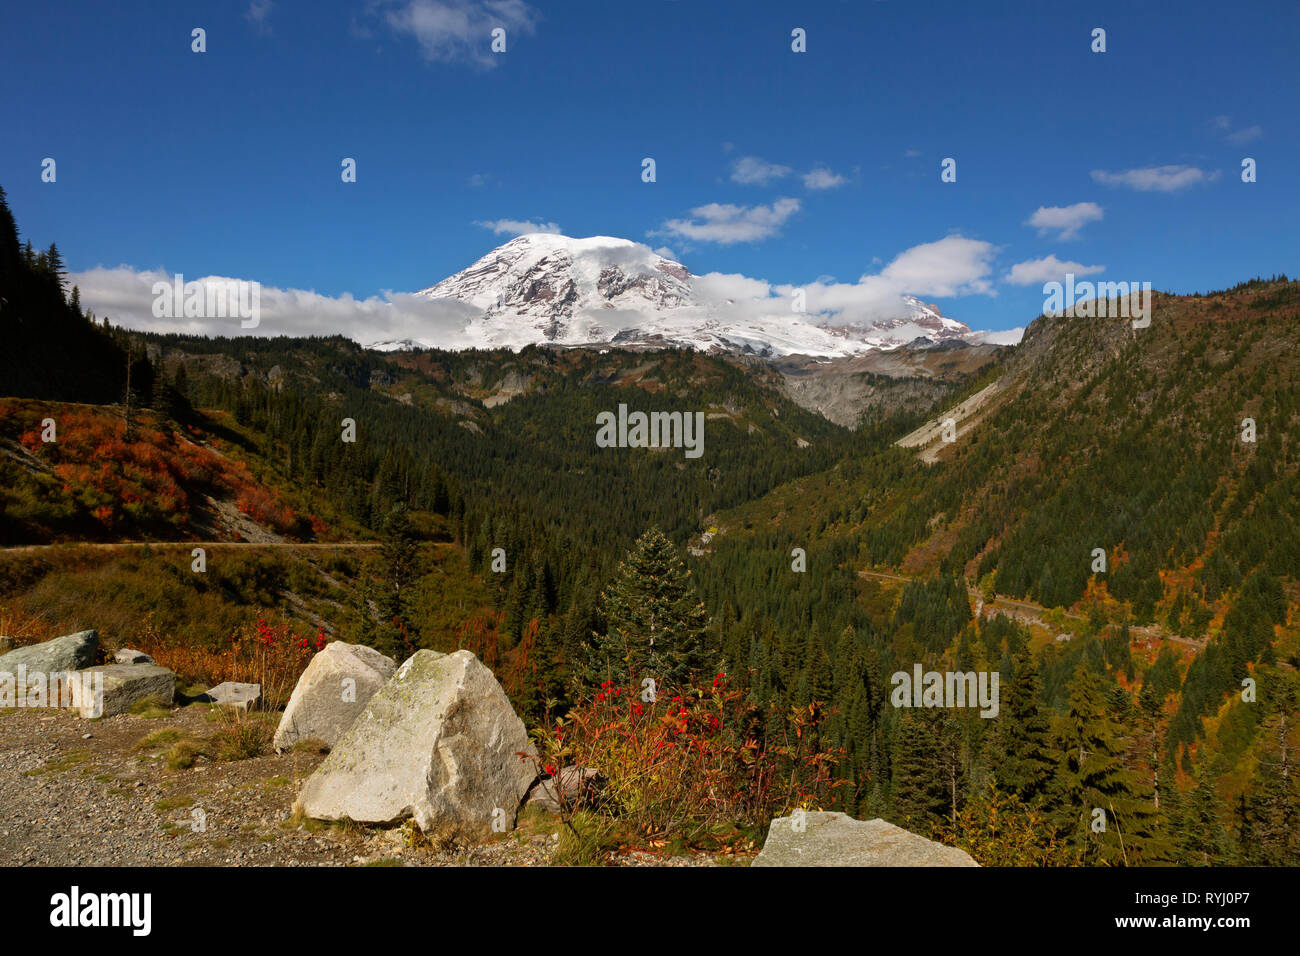 WA15946-00...WASHINGTON - Fall color in Stevens Canyon from Stevens Canyon Bend pullout and Mount Rainier in Mount Rainier National Park. - Stock Image